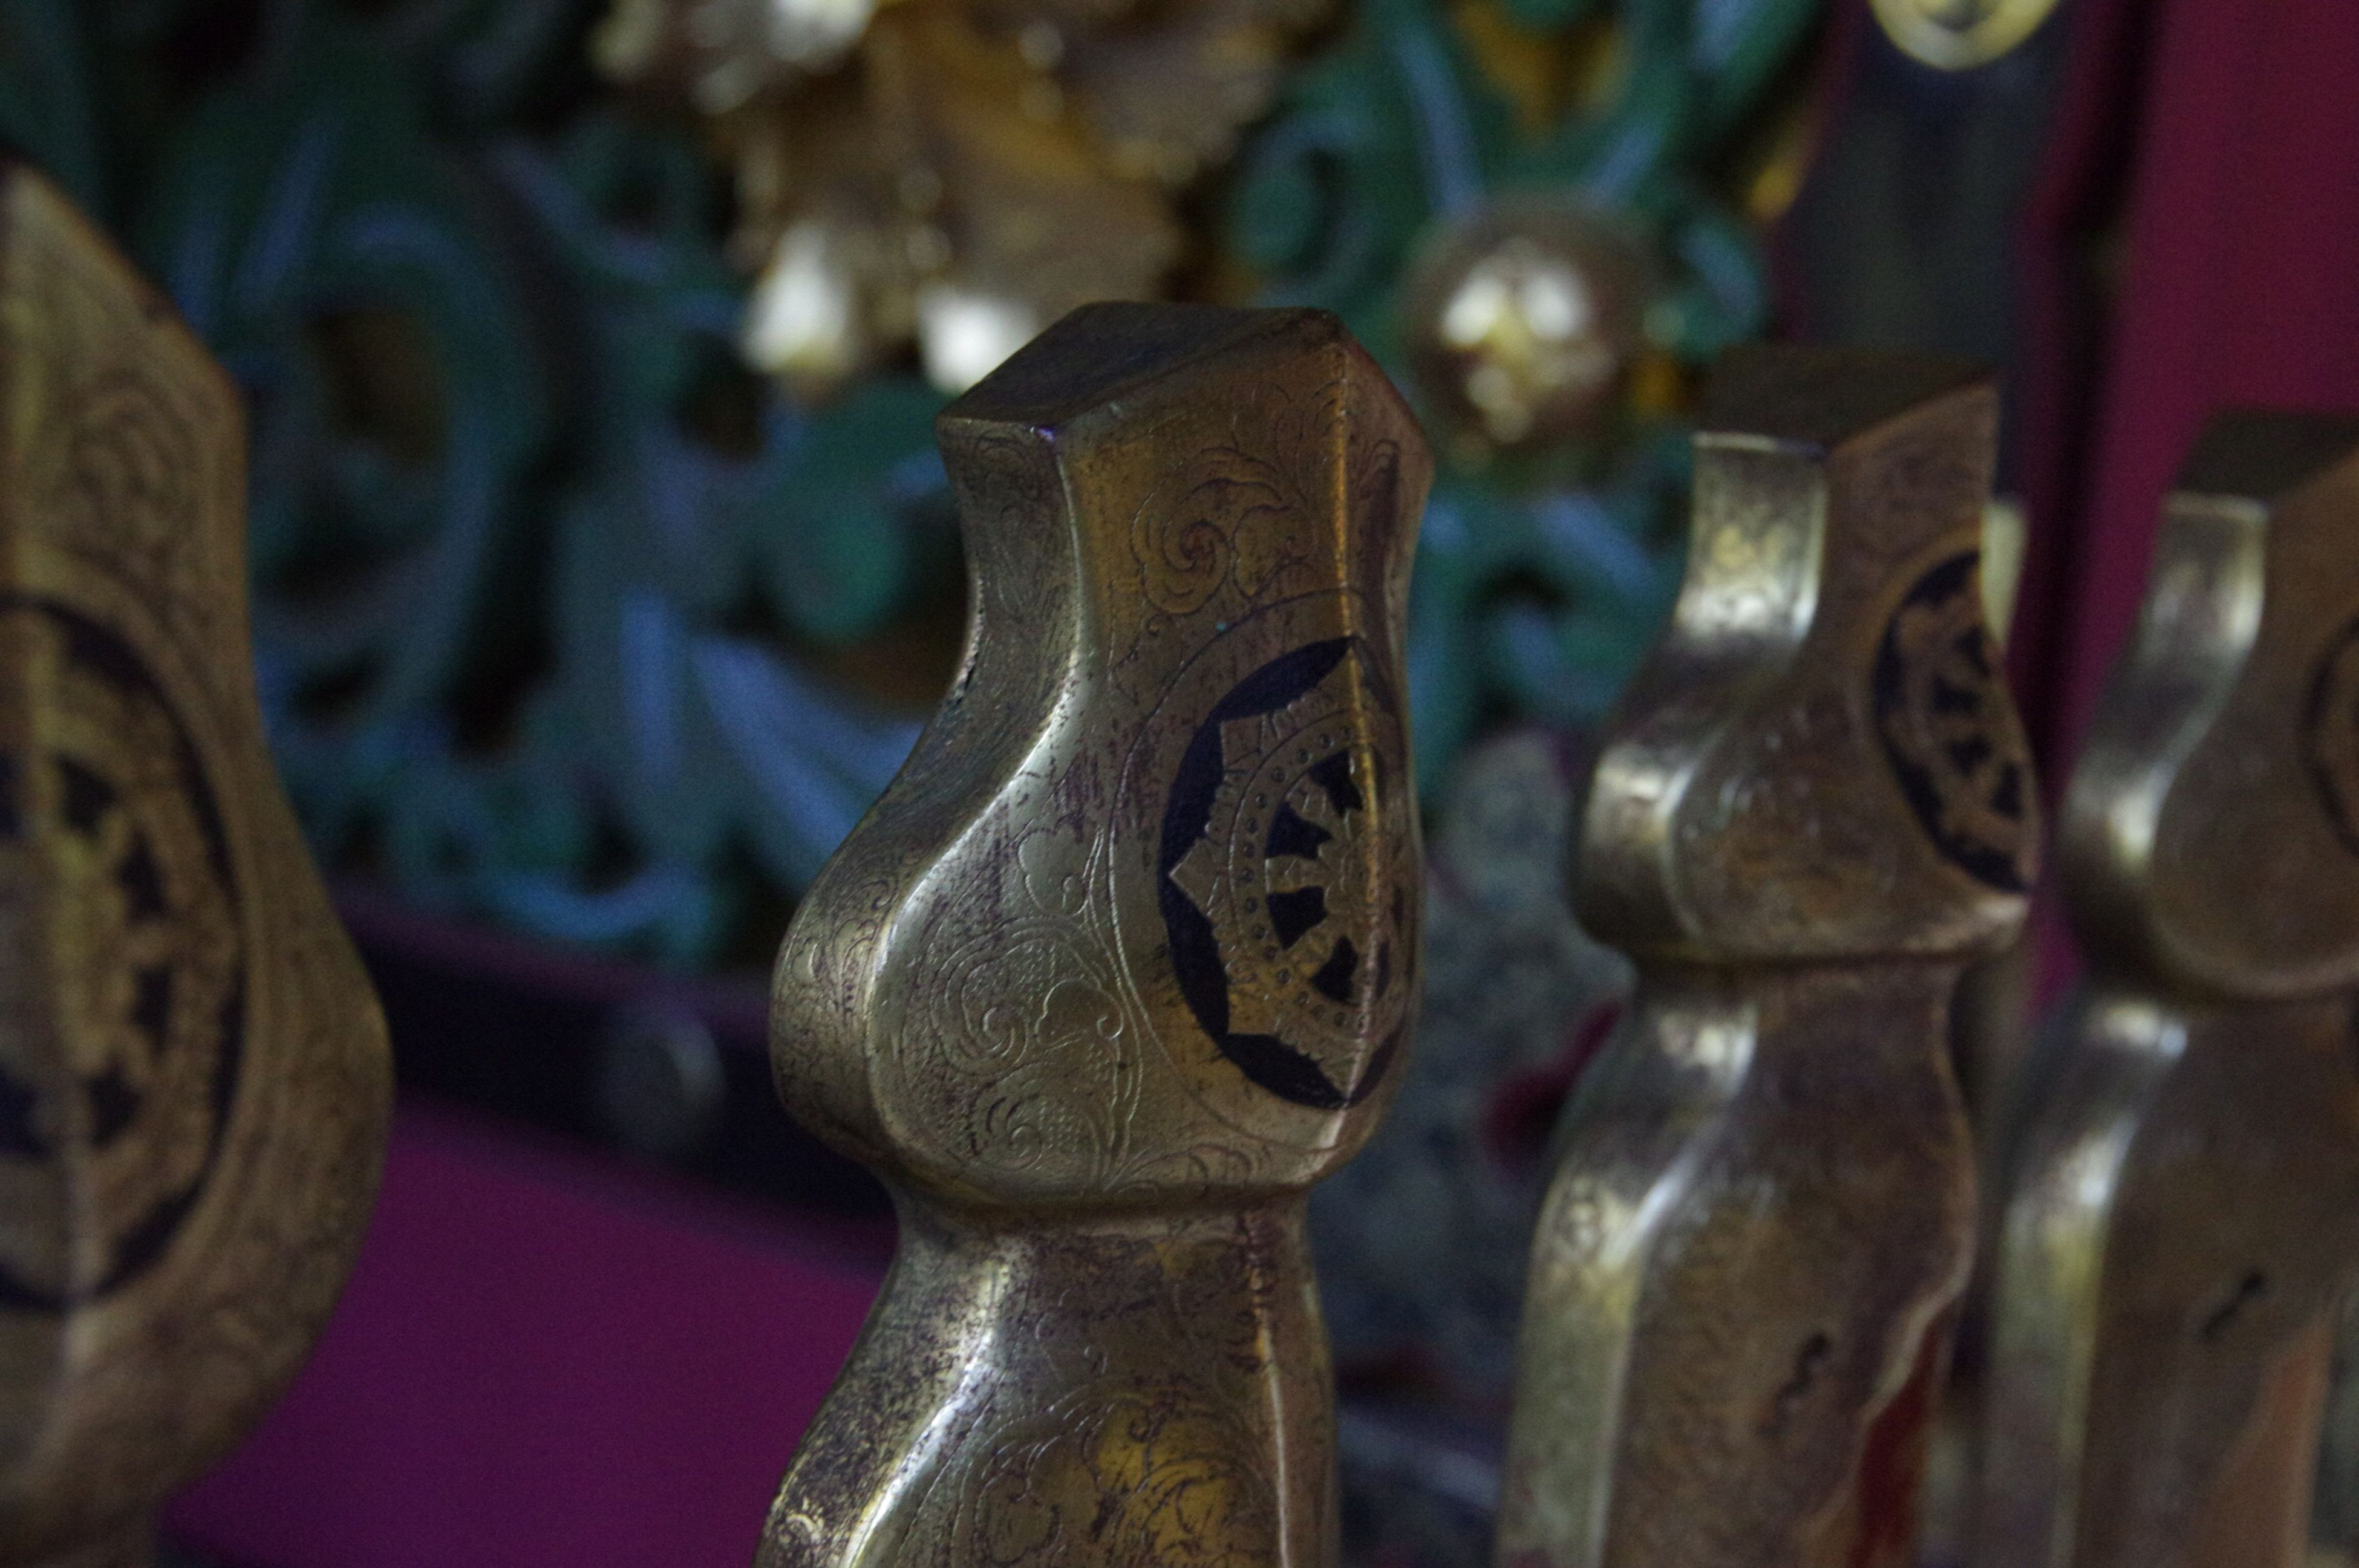 focus on foreground, close-up, metal, art and craft, indoors, religion, art, spirituality, selective focus, creativity, old, metallic, human representation, sculpture, antique, statue, no people, ornate, still life, carving - craft product